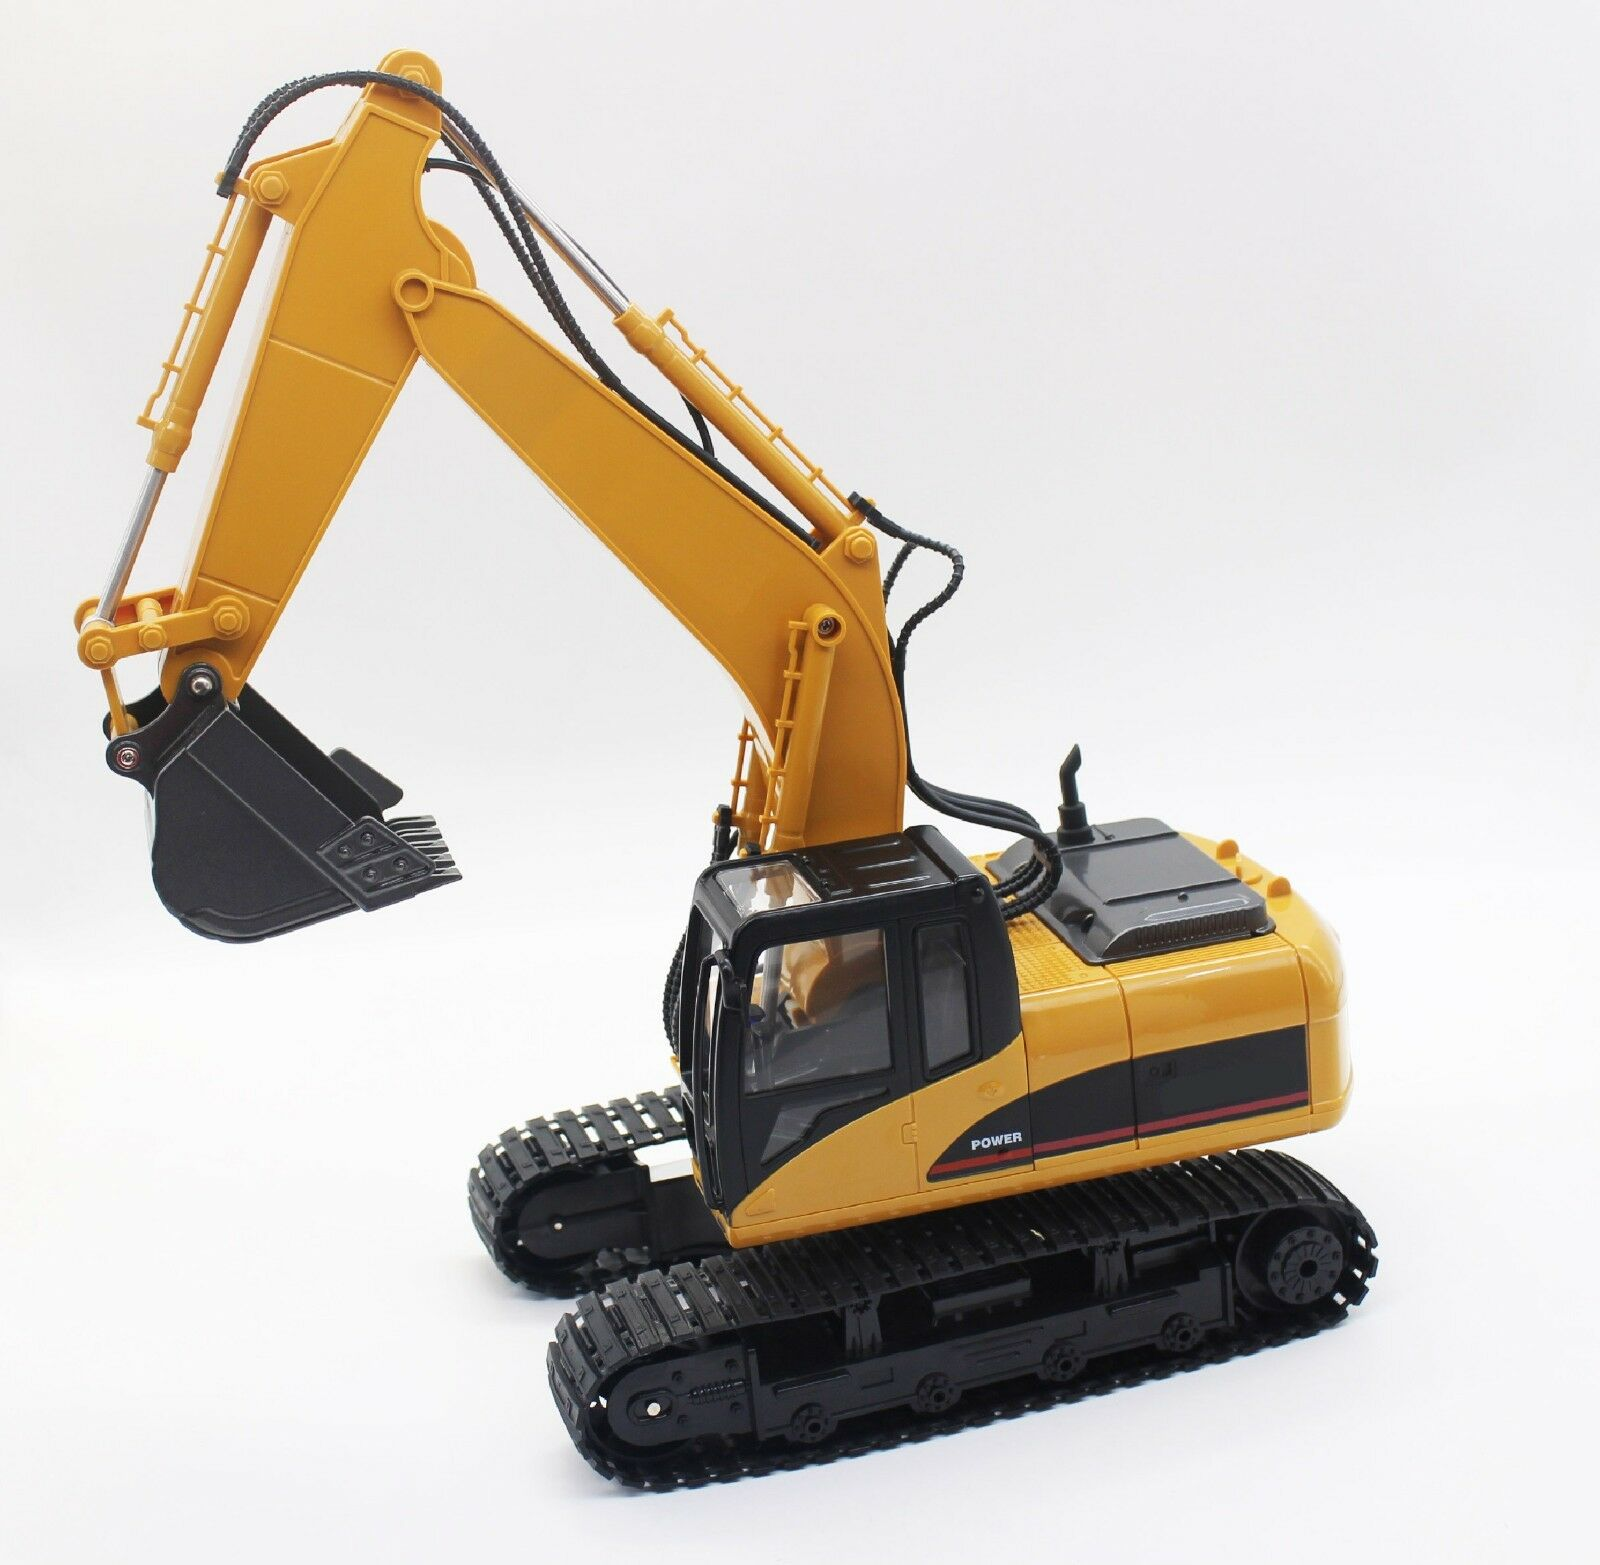 Riviera RC Excavator 15 Channel - giallo